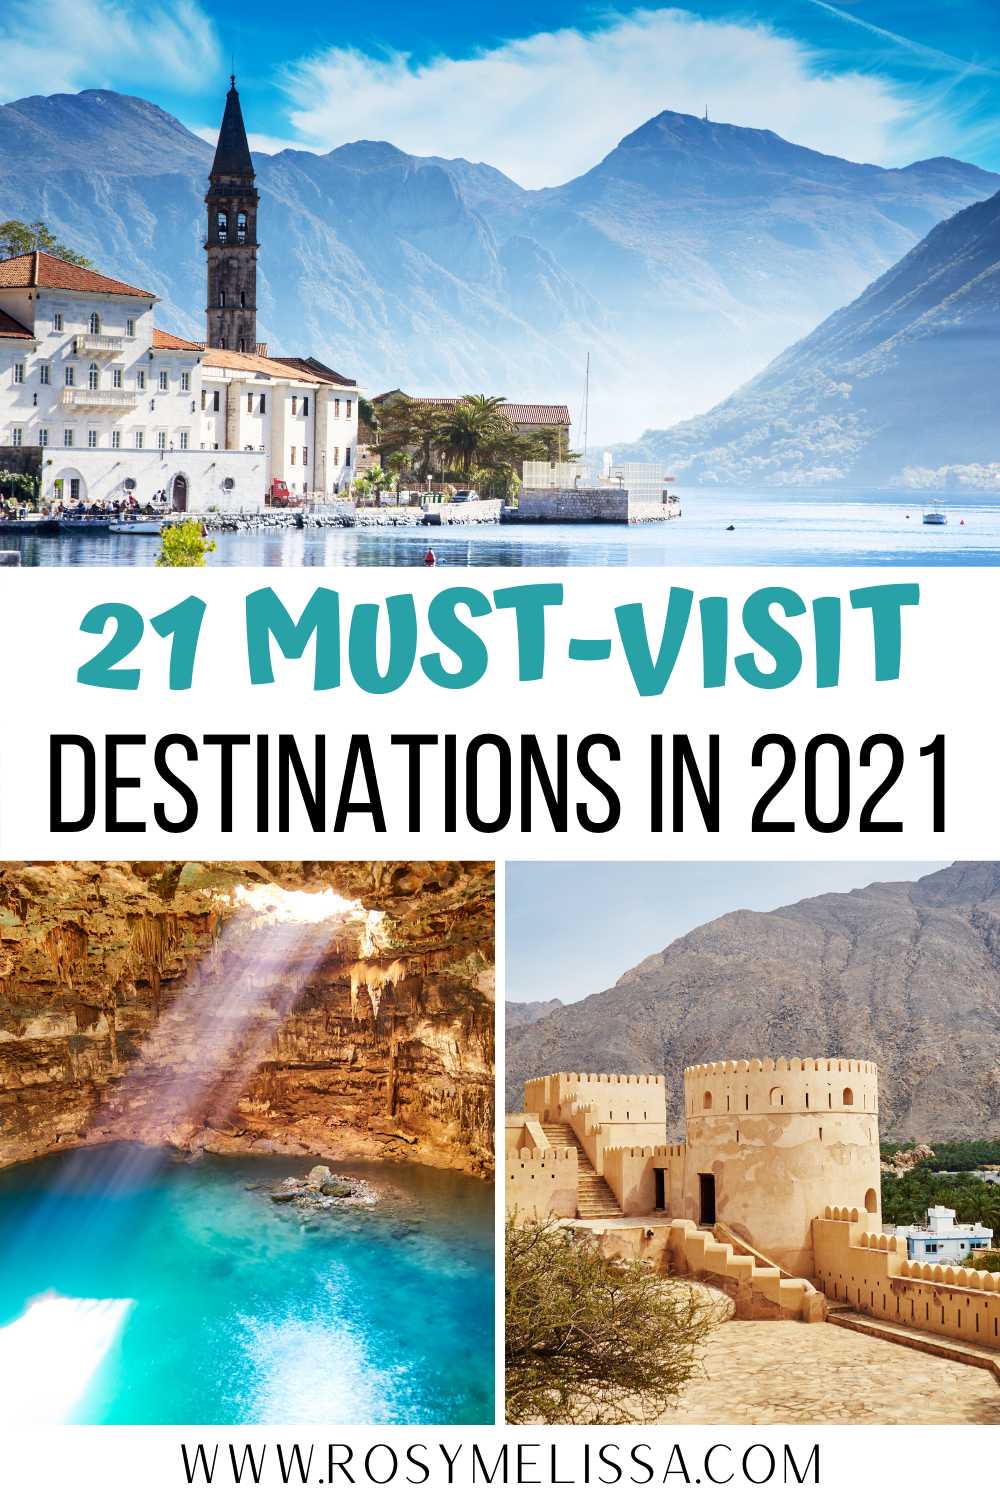 21 must-visit destinations in 2021, where to go in 2021, places to visit in 2021, 2021 travel list